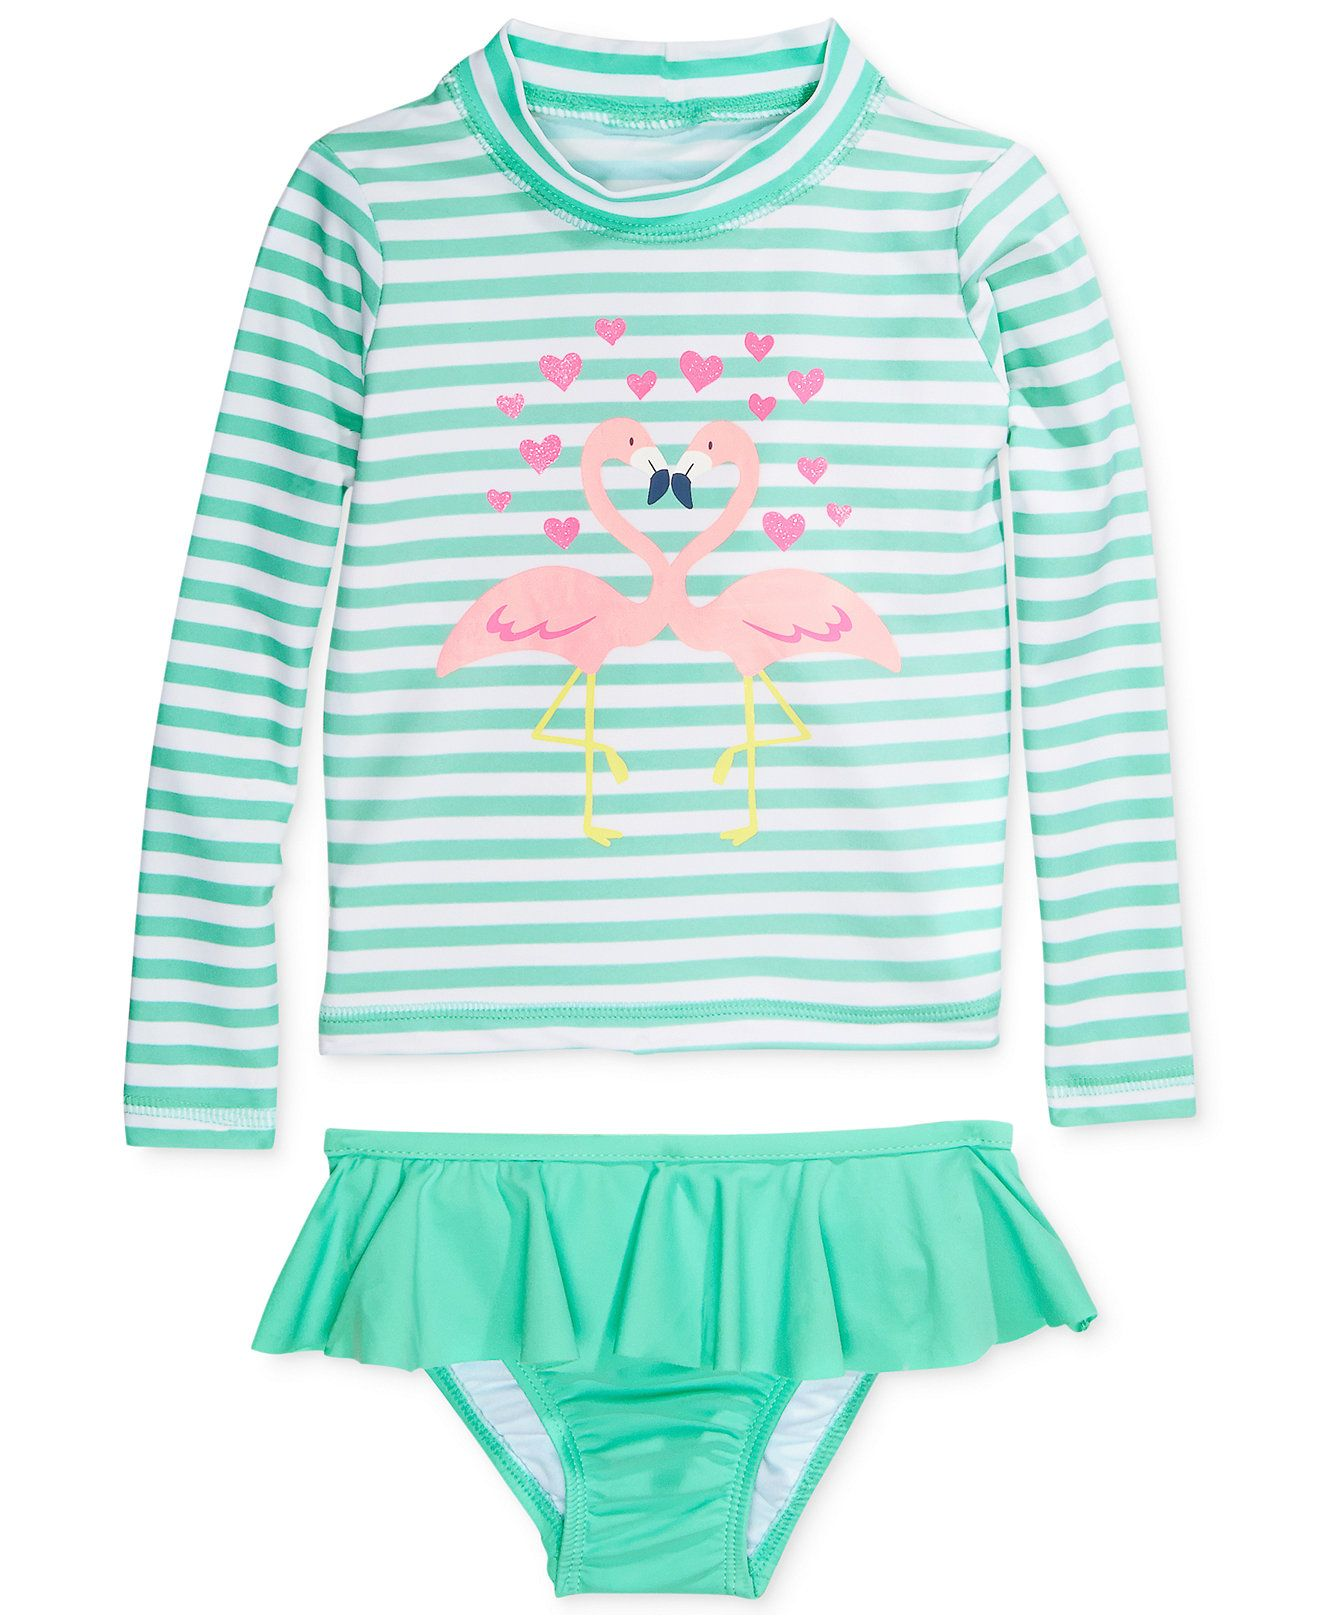 Macy S Baby Girl Clothes Clearance Newest and Cutest Baby Clothing